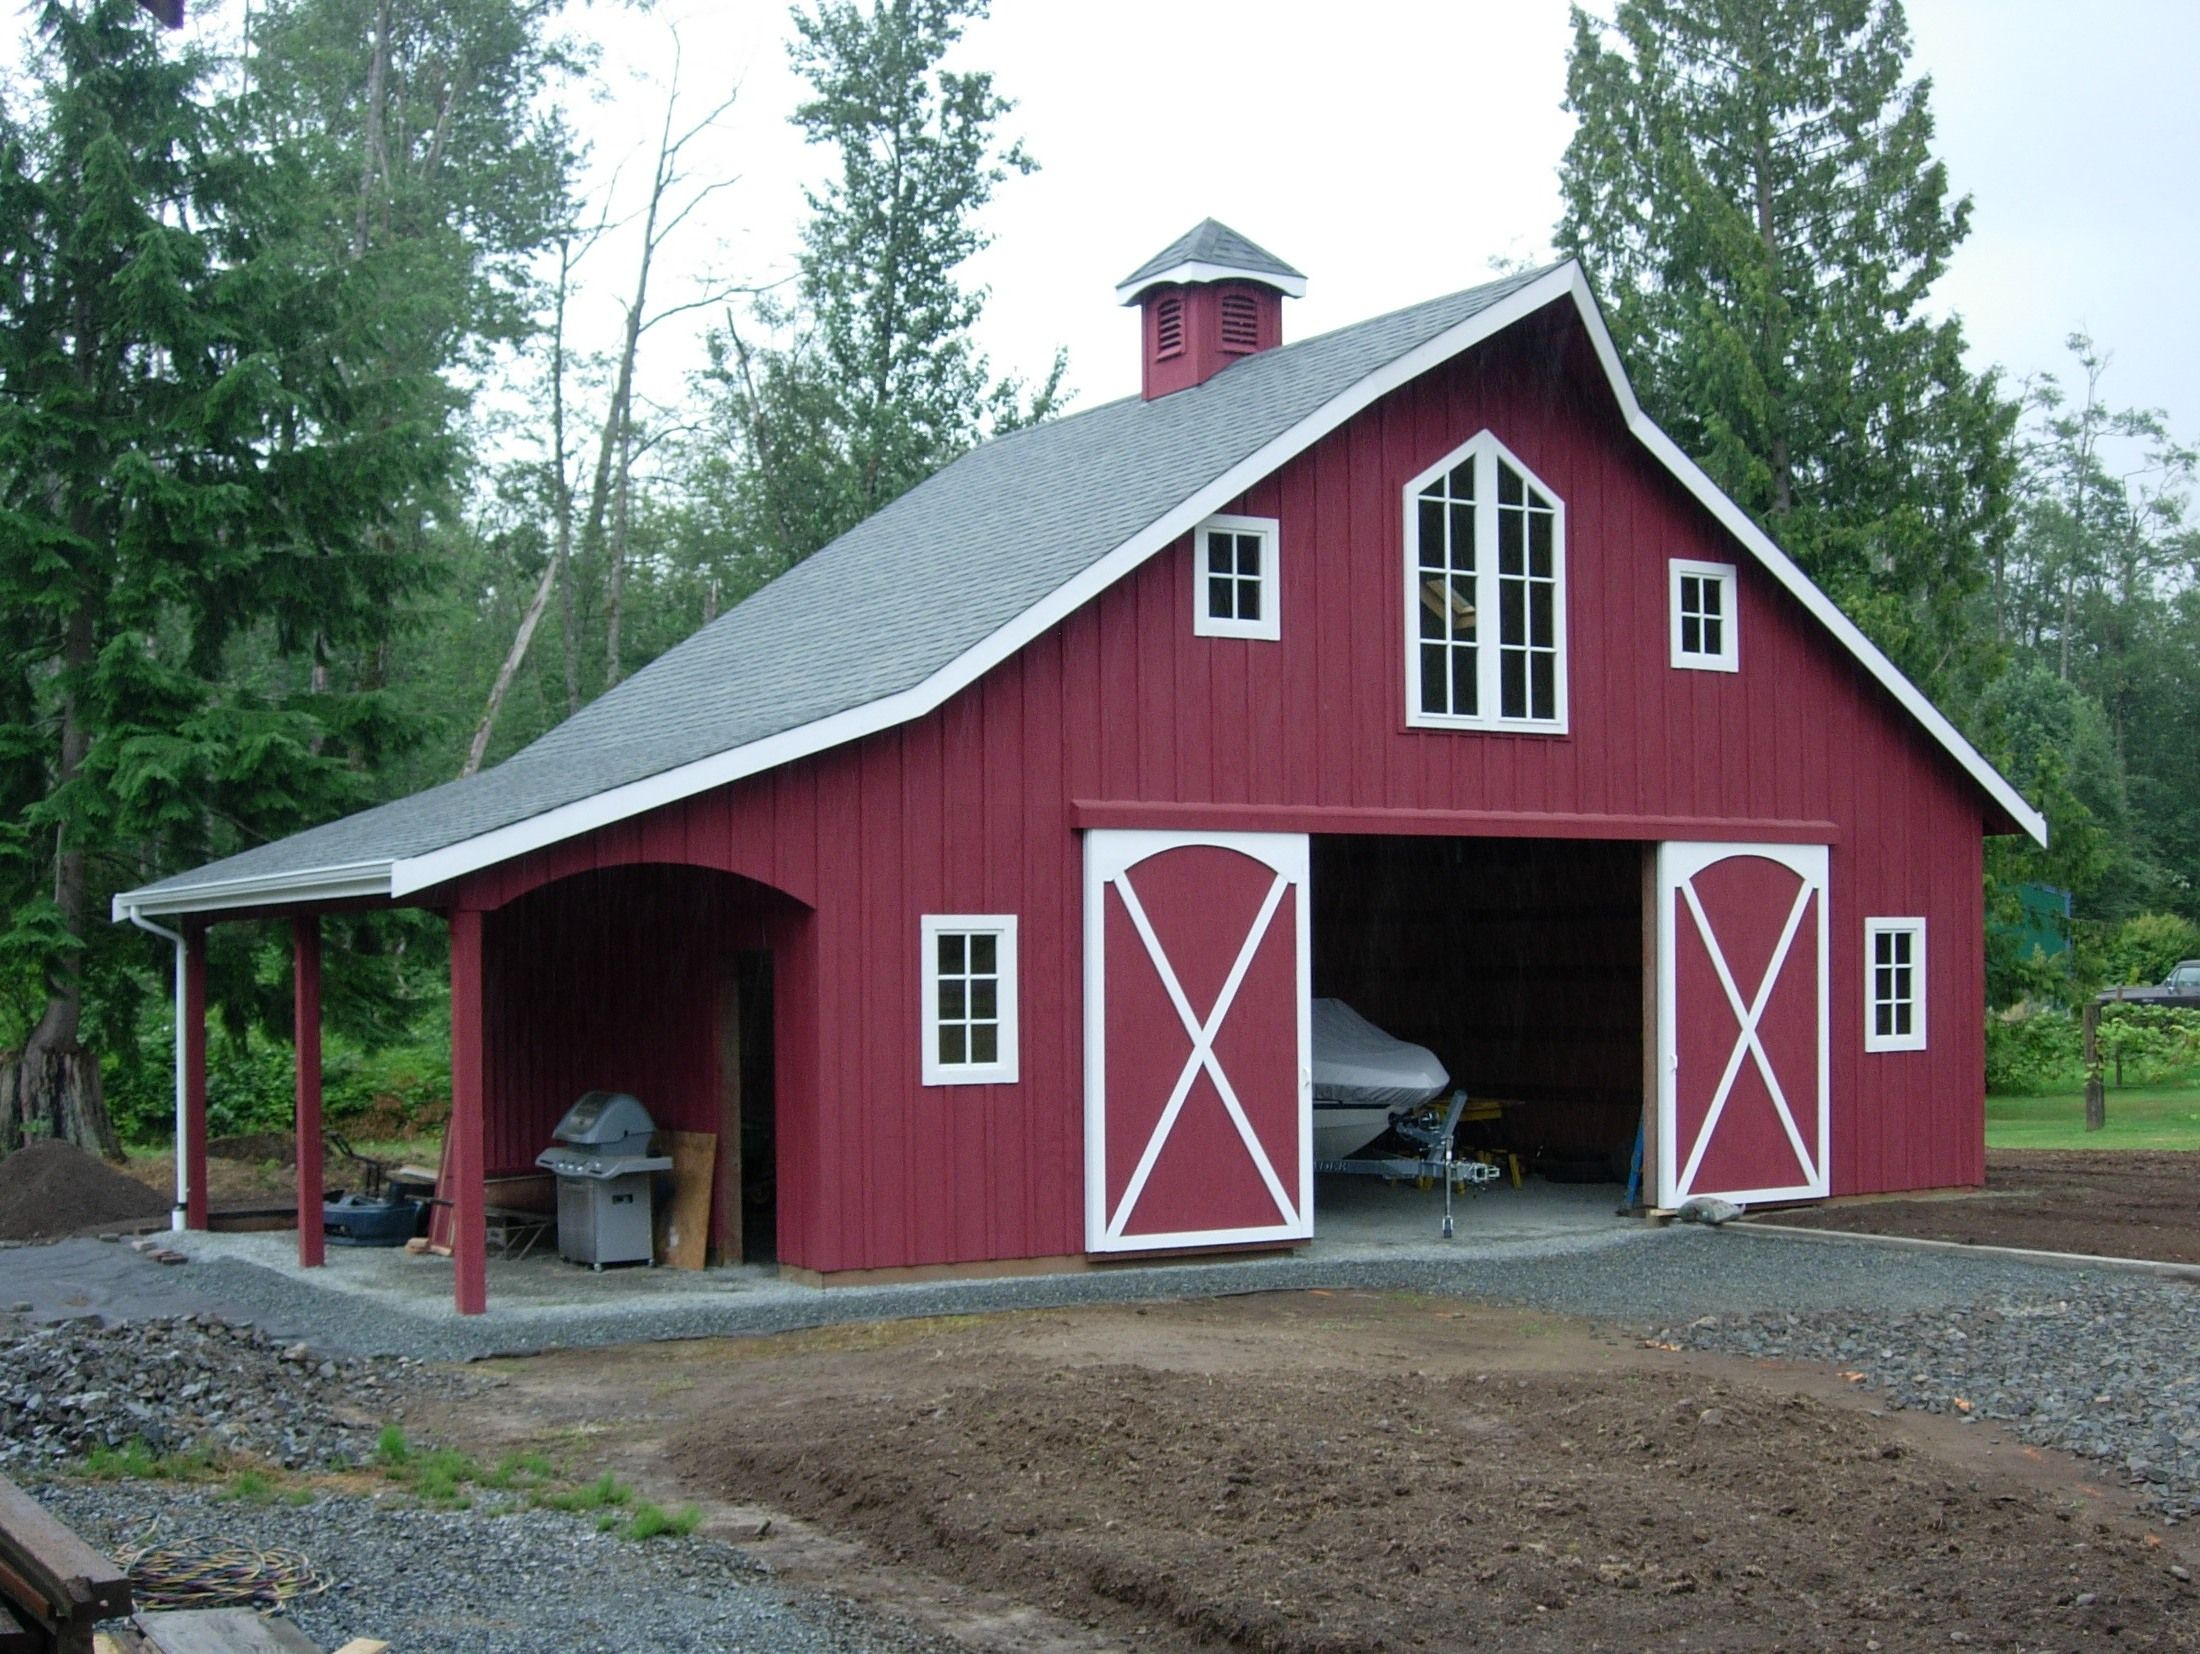 Barn design: More horses need a parallel stall arrangement | Barn ...